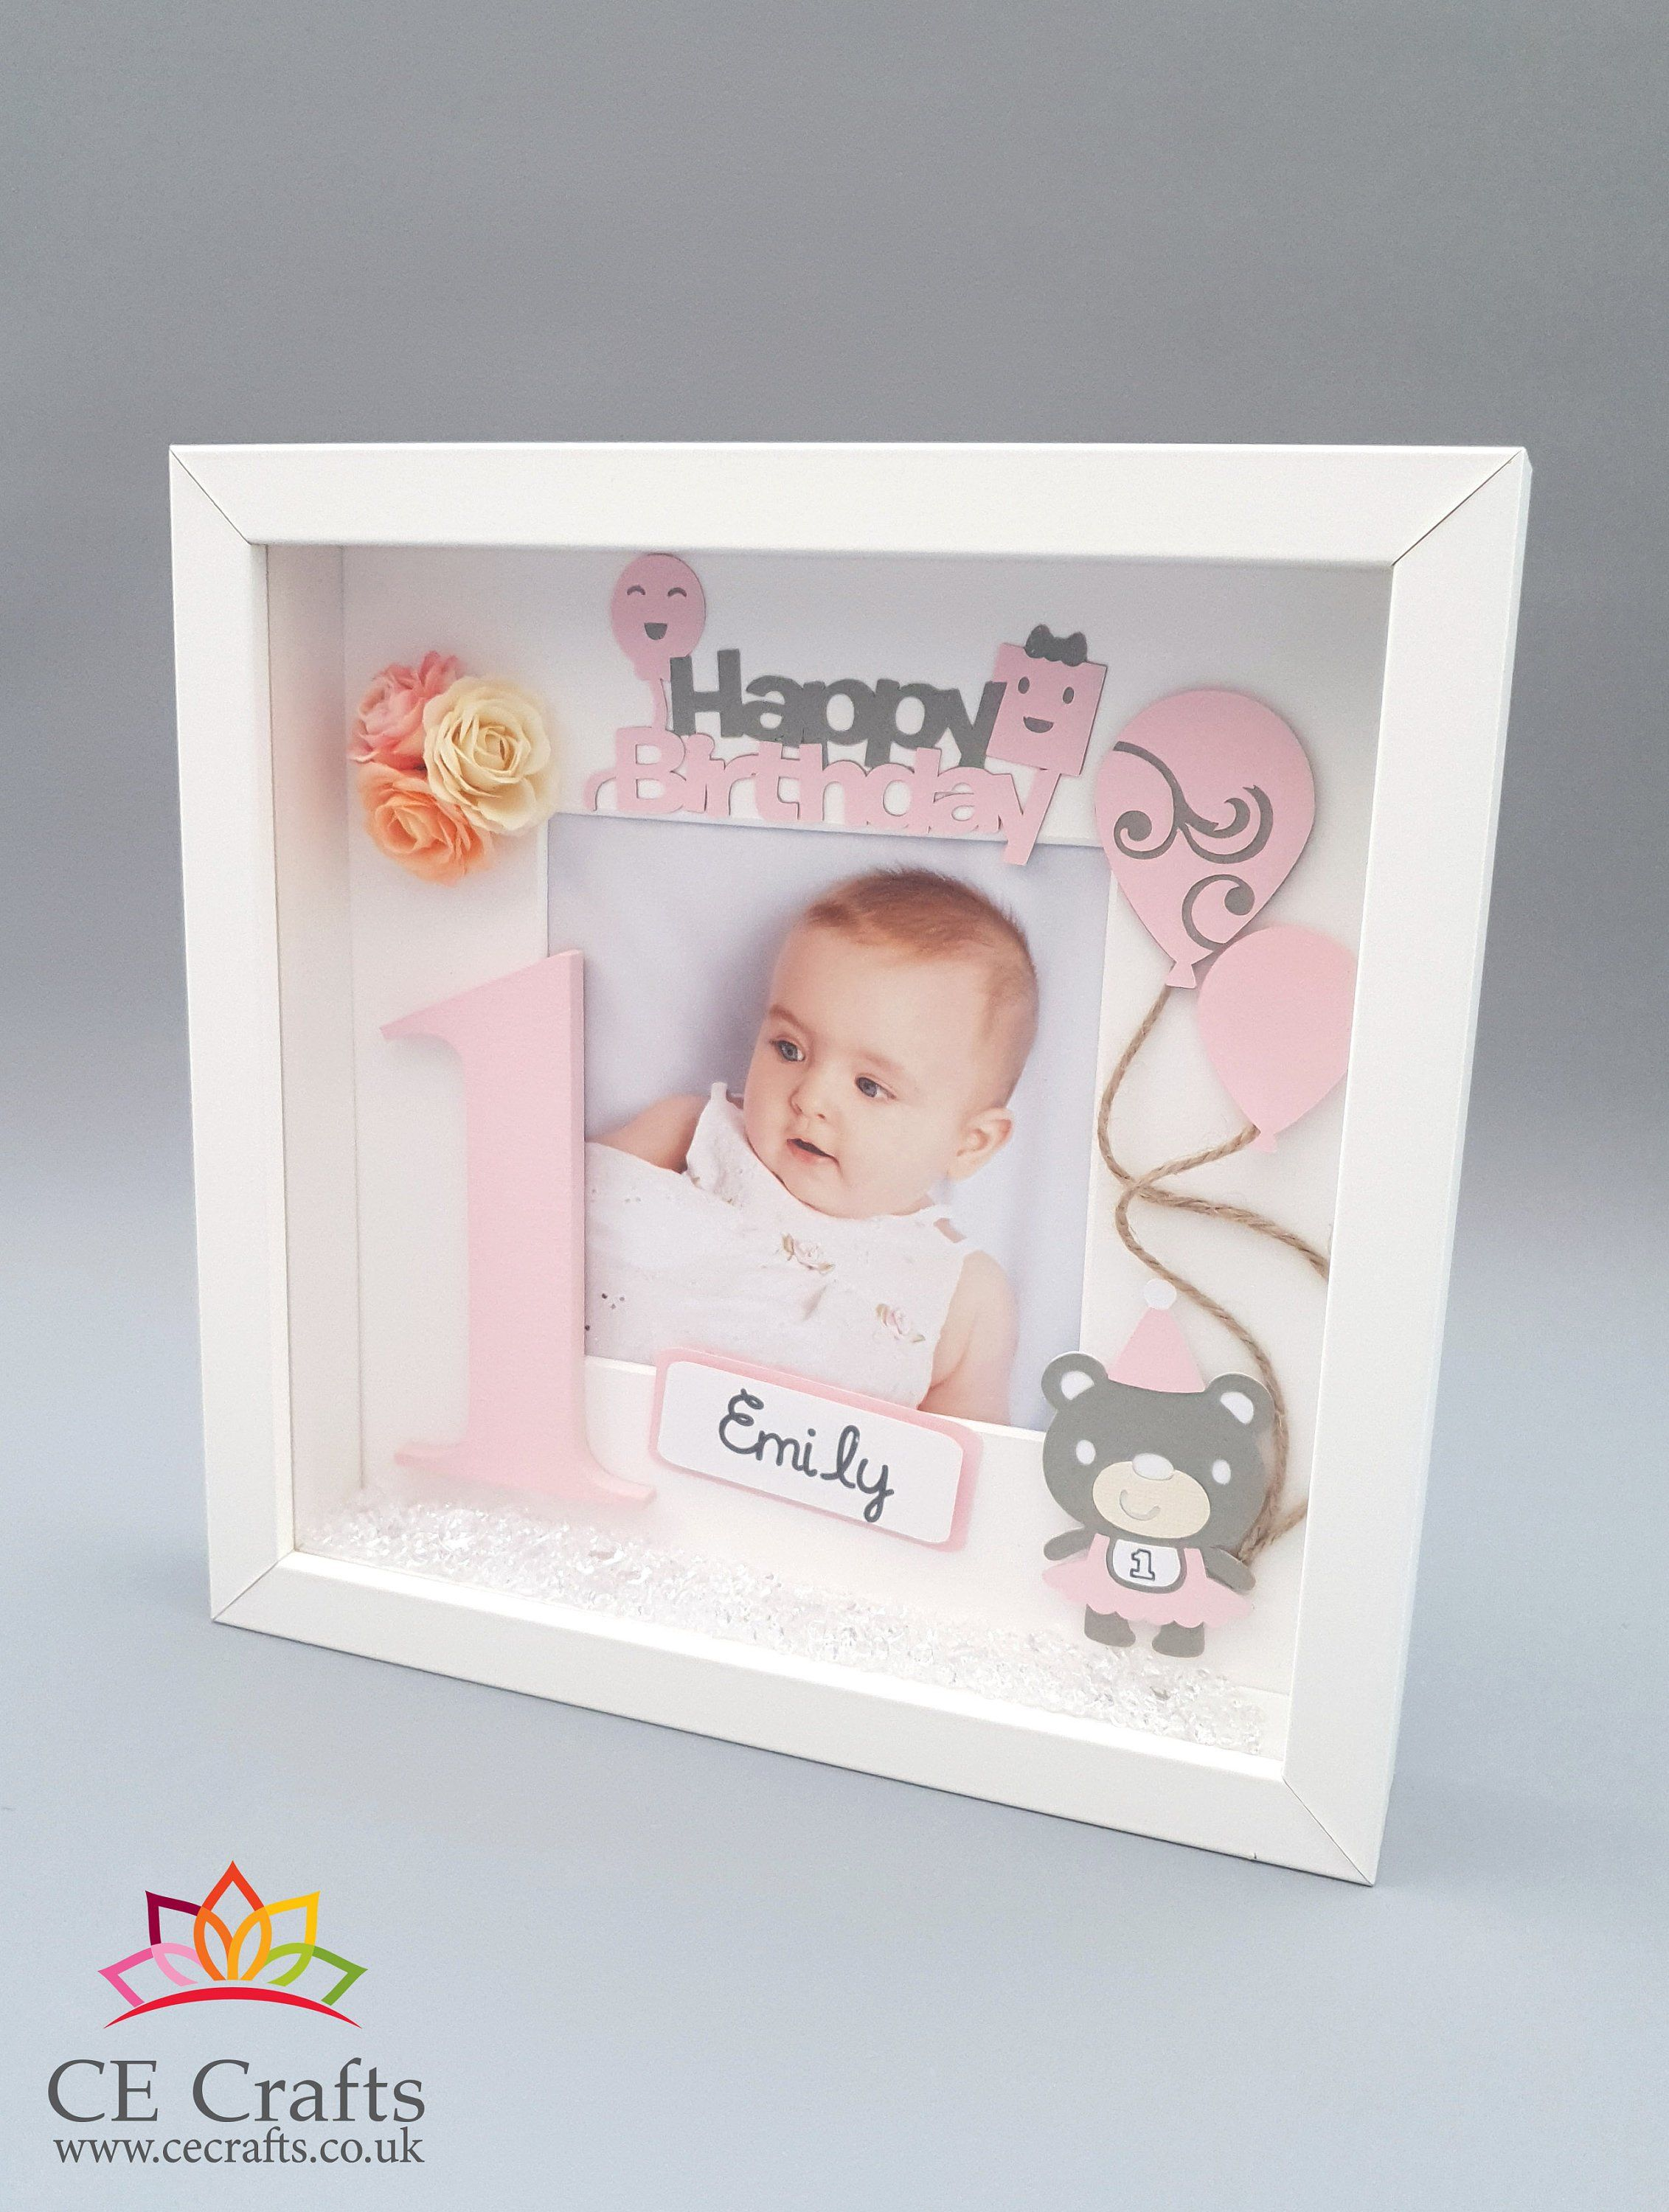 Personalised Baby Frame Letter Frame 1st Birthday Gift Etsy Personalized Baby Frame Baby Frame Framed Letters